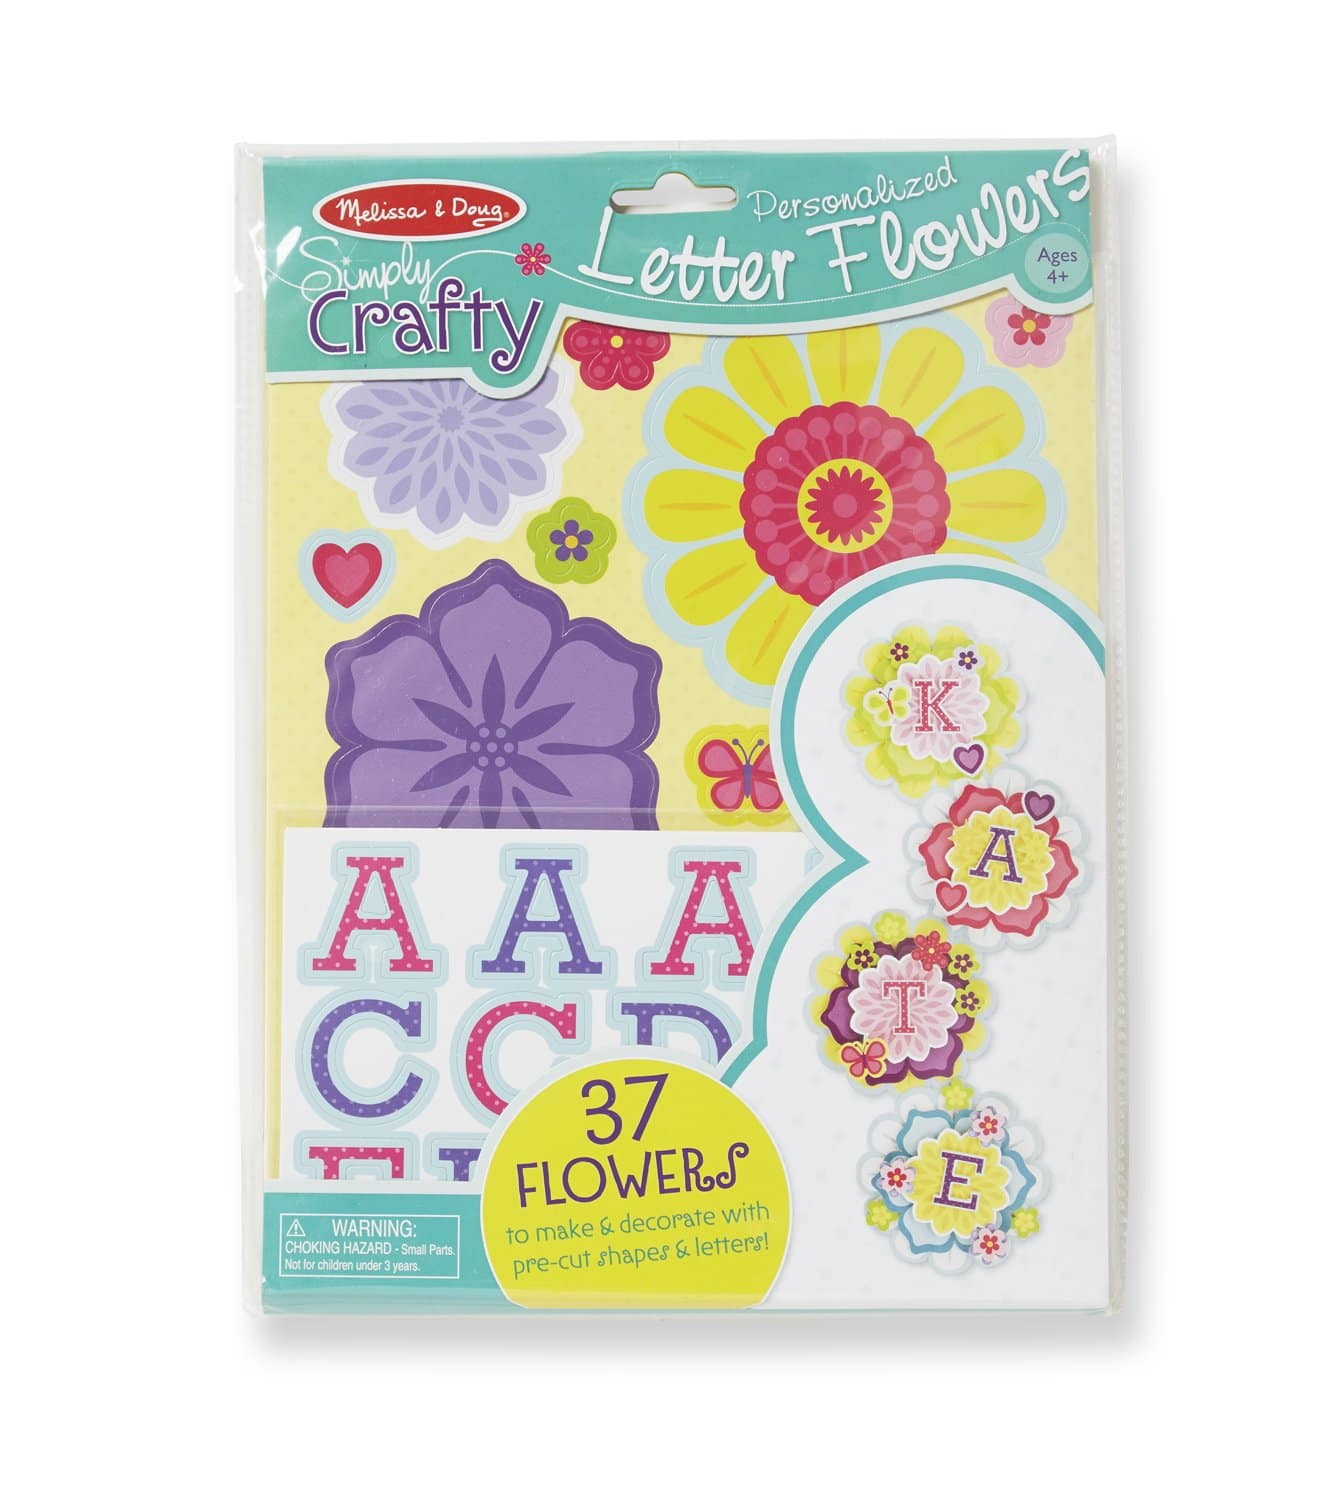 37-Pce. Pack Melissa & Doug Simply Crafty Personalized Letter Flowers $2.98 - Amazon